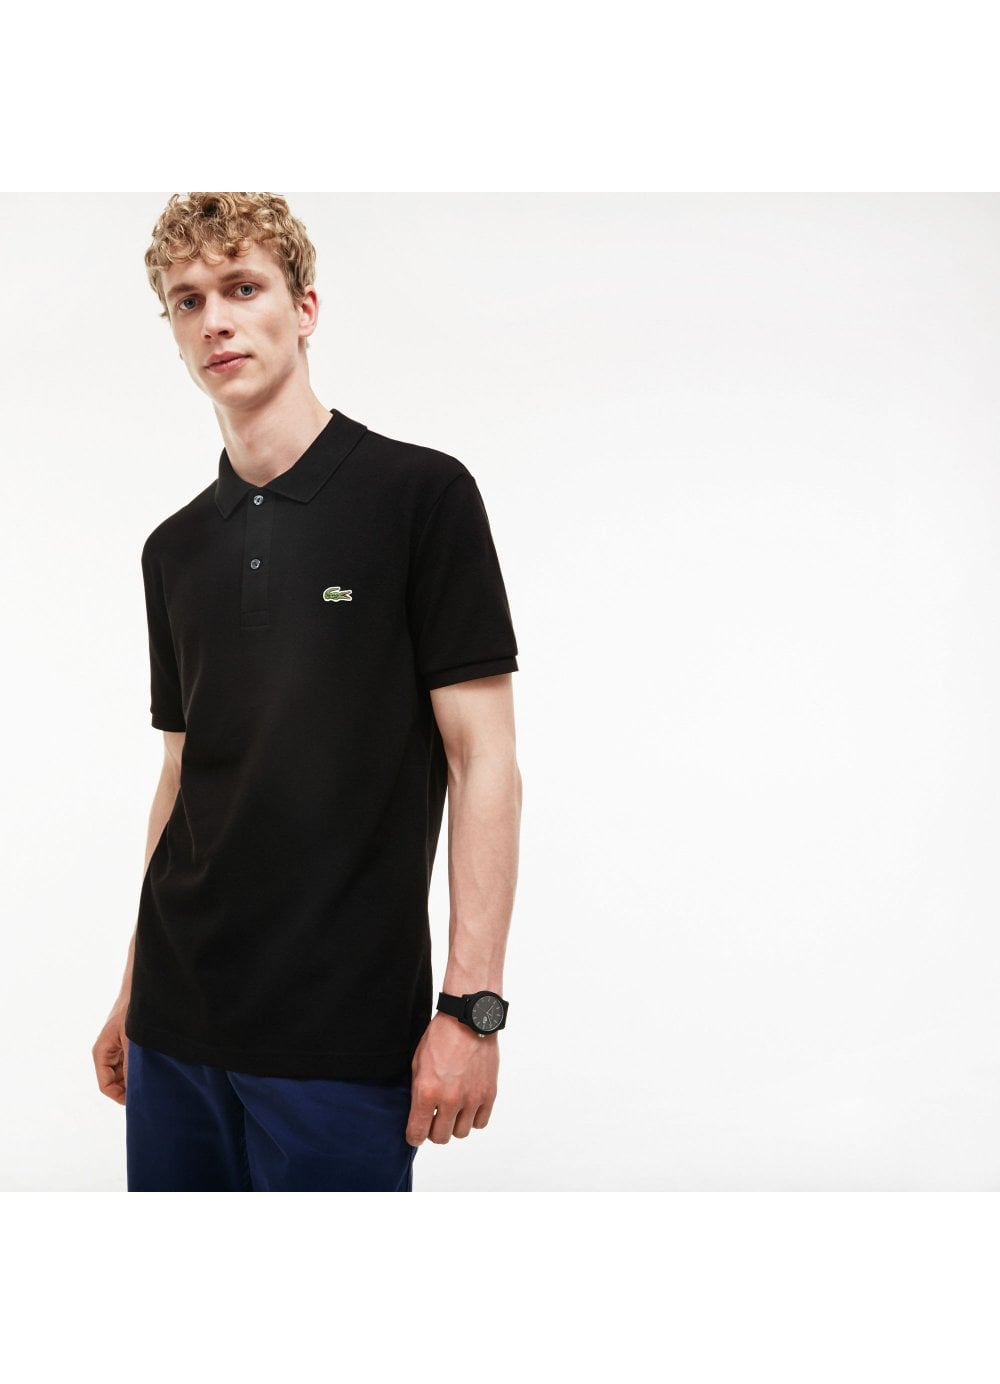 d327e41776 Mens Short Sleeved Slim Fit Lacoste Polo Shirt Black - Time Clothing